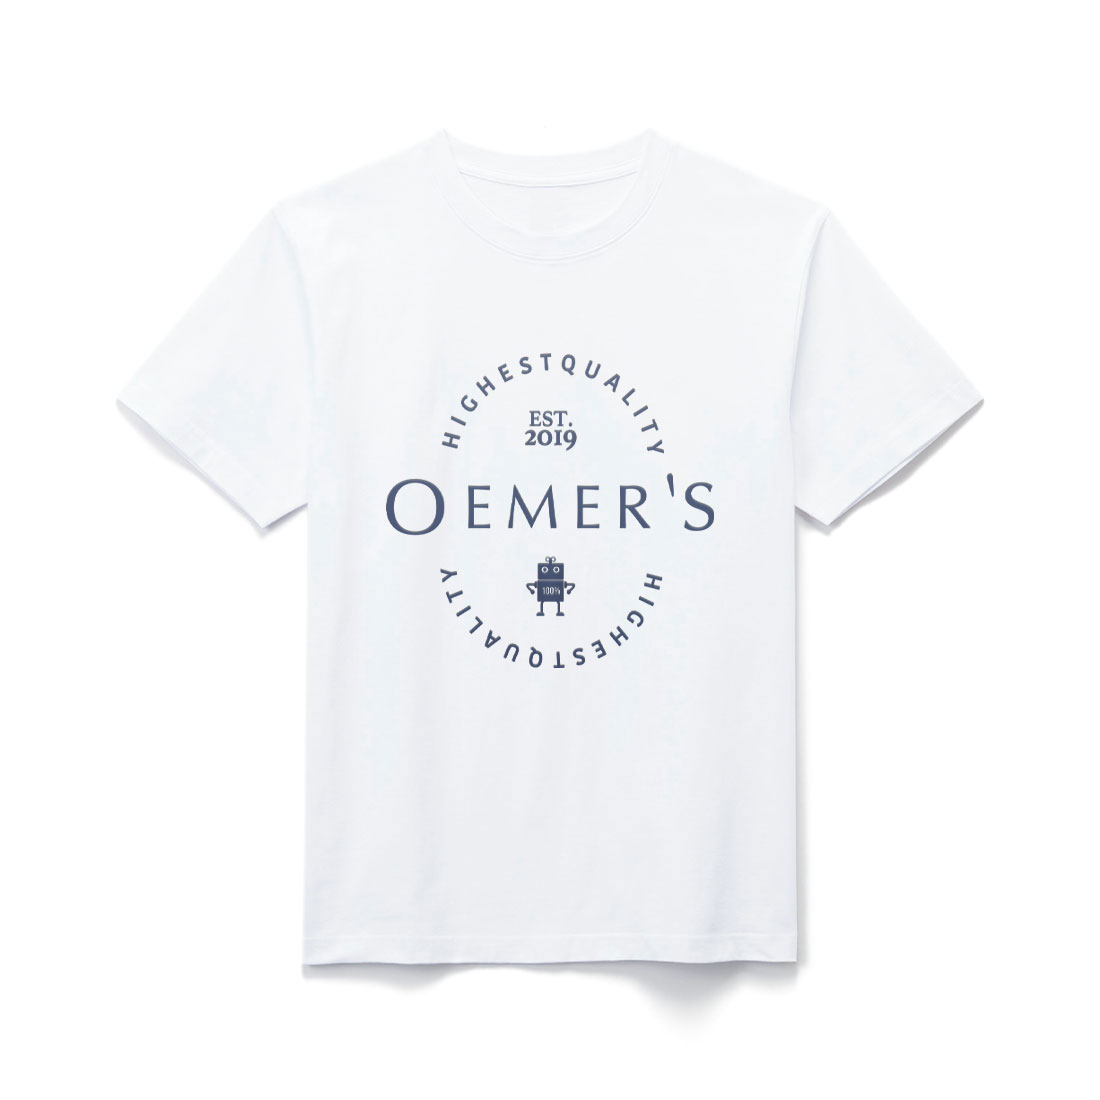 200207 – OEMERS#15